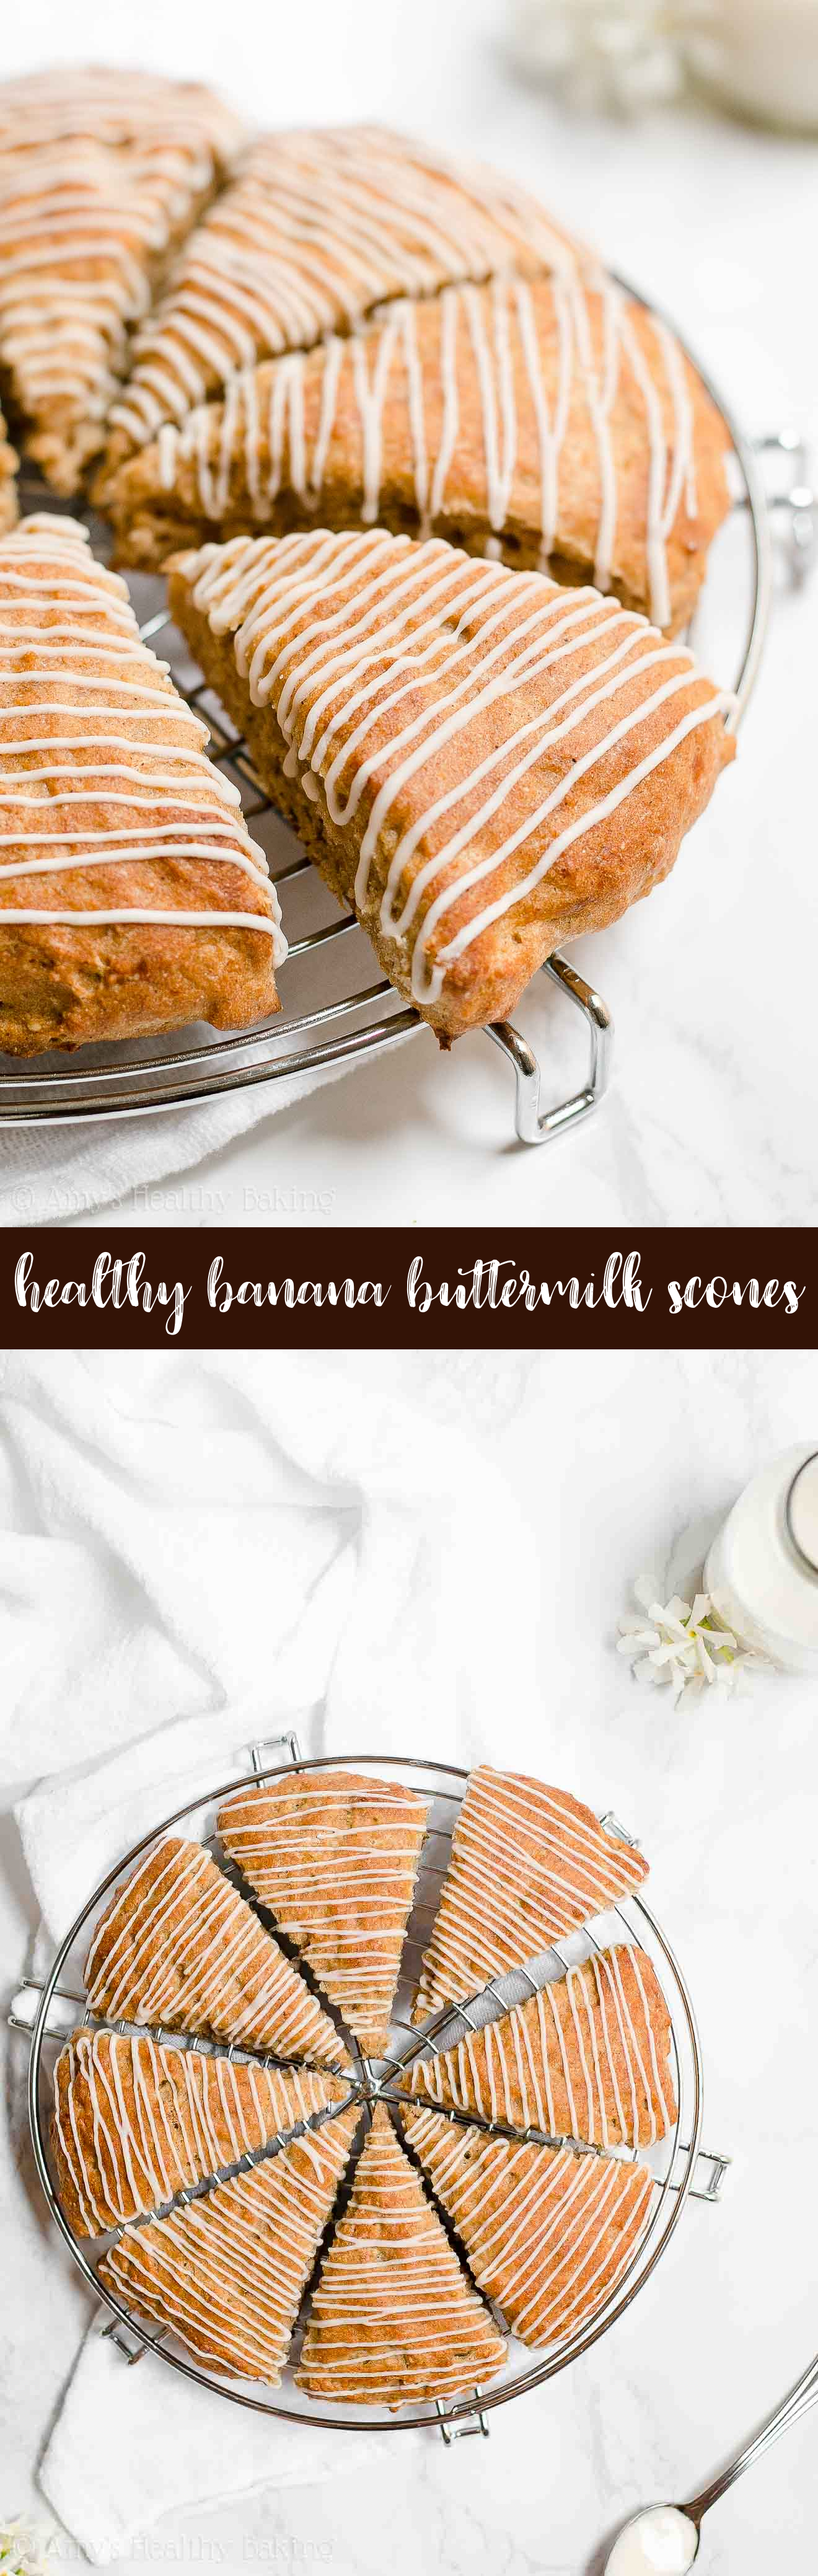 Best Easy and Healthy Banana Buttermilk Scones